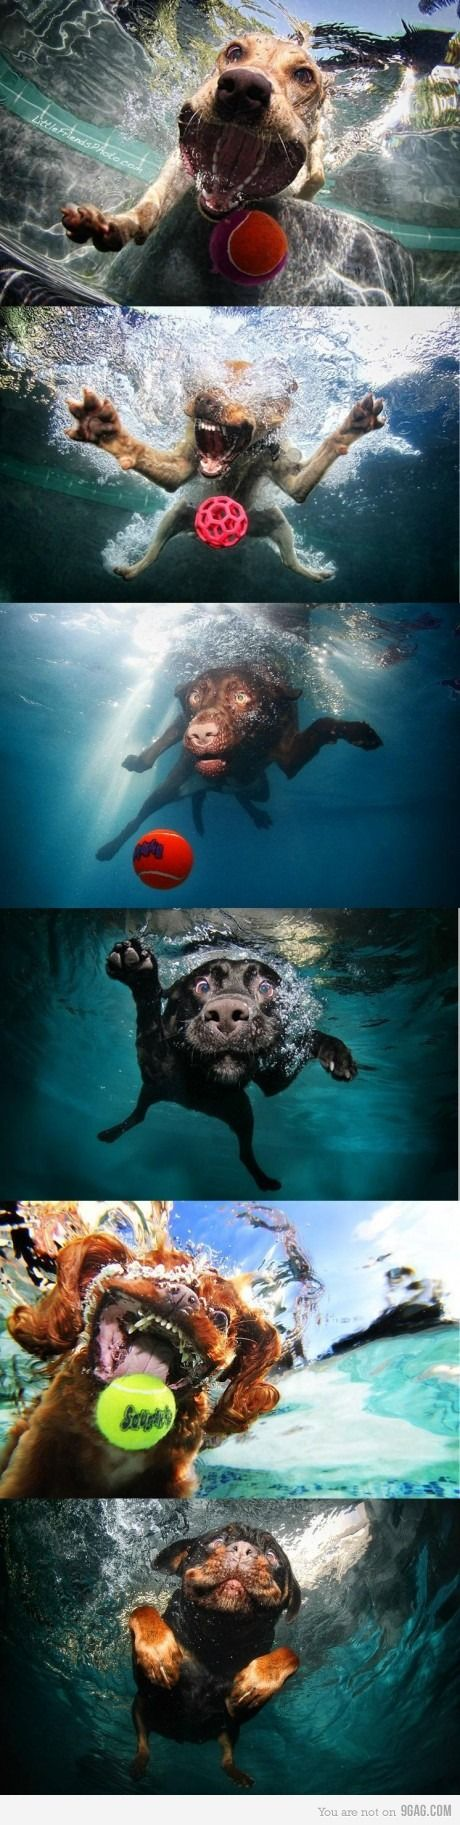 Awesome underwater dog photos